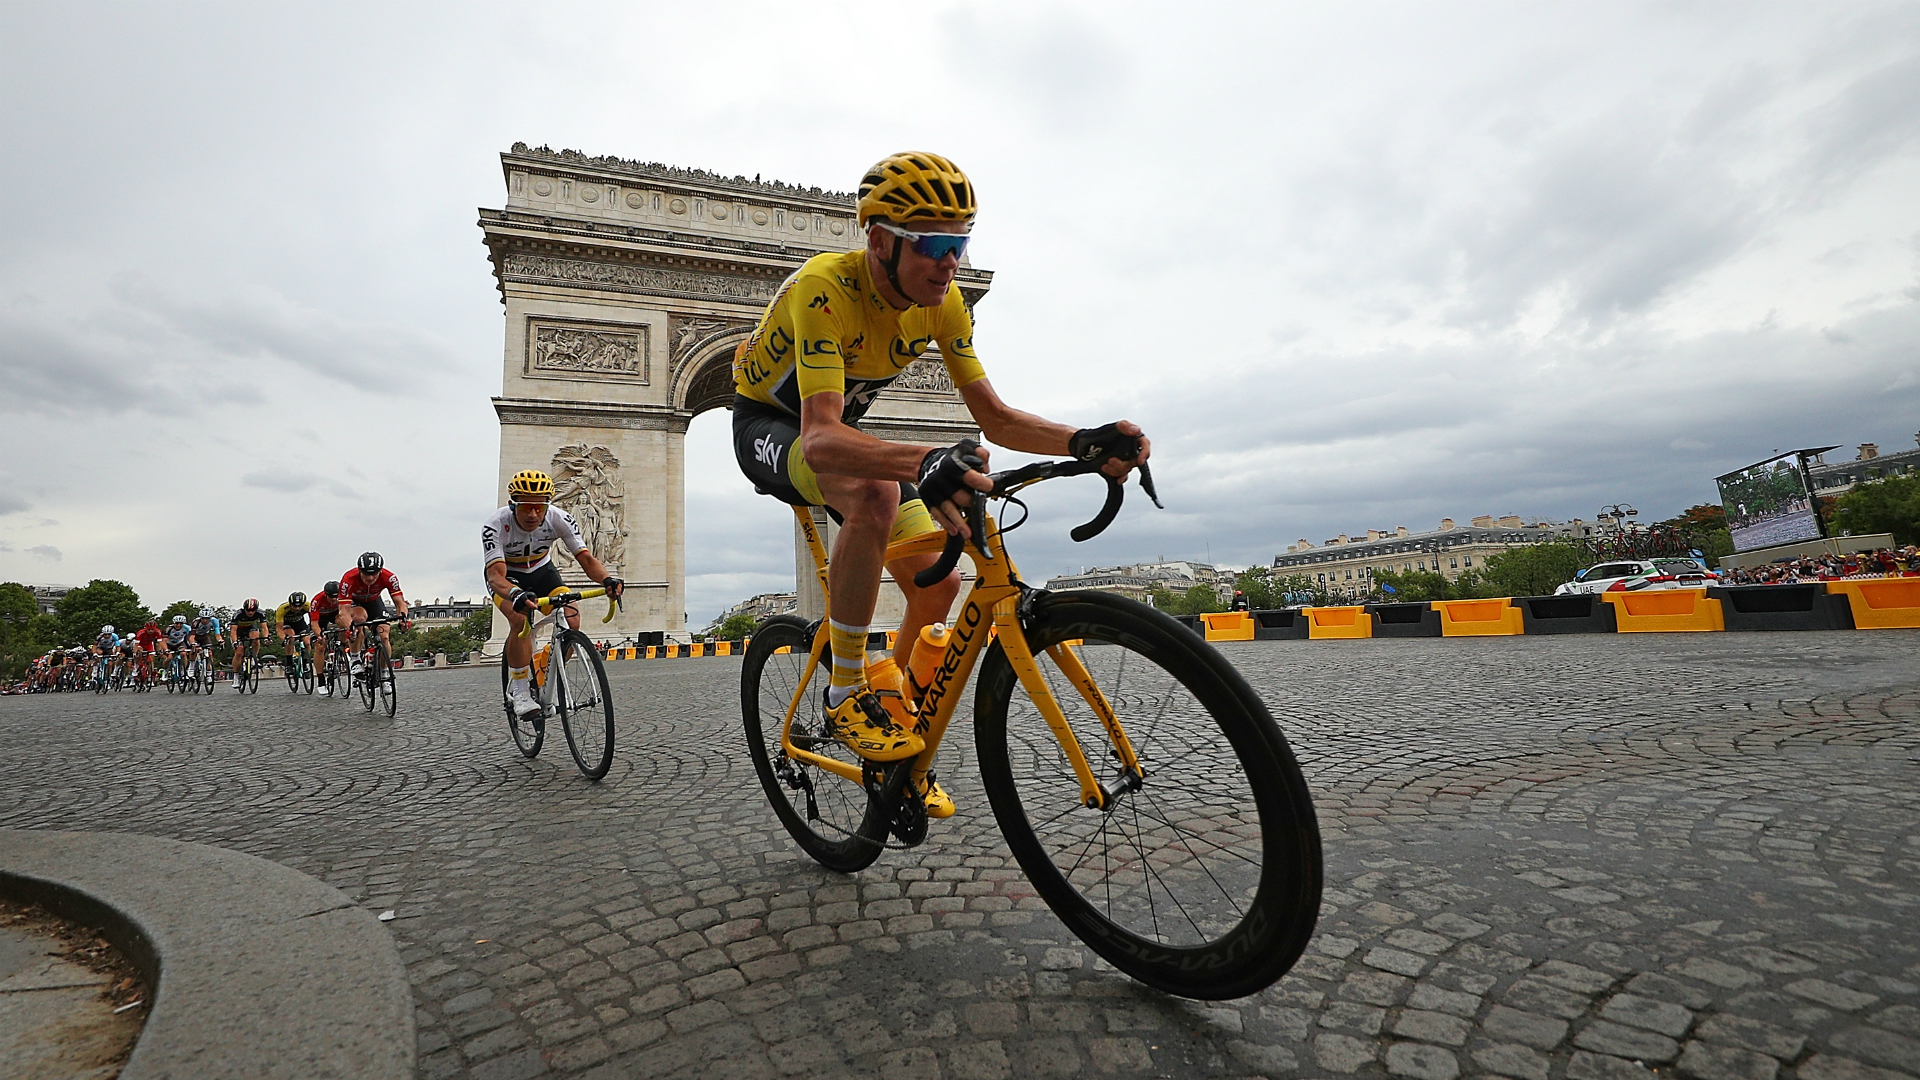 Team INEOS' star rider Chris Froome was in intensive care after breaking several bones in a crash that ruled him out of the Tour de France.